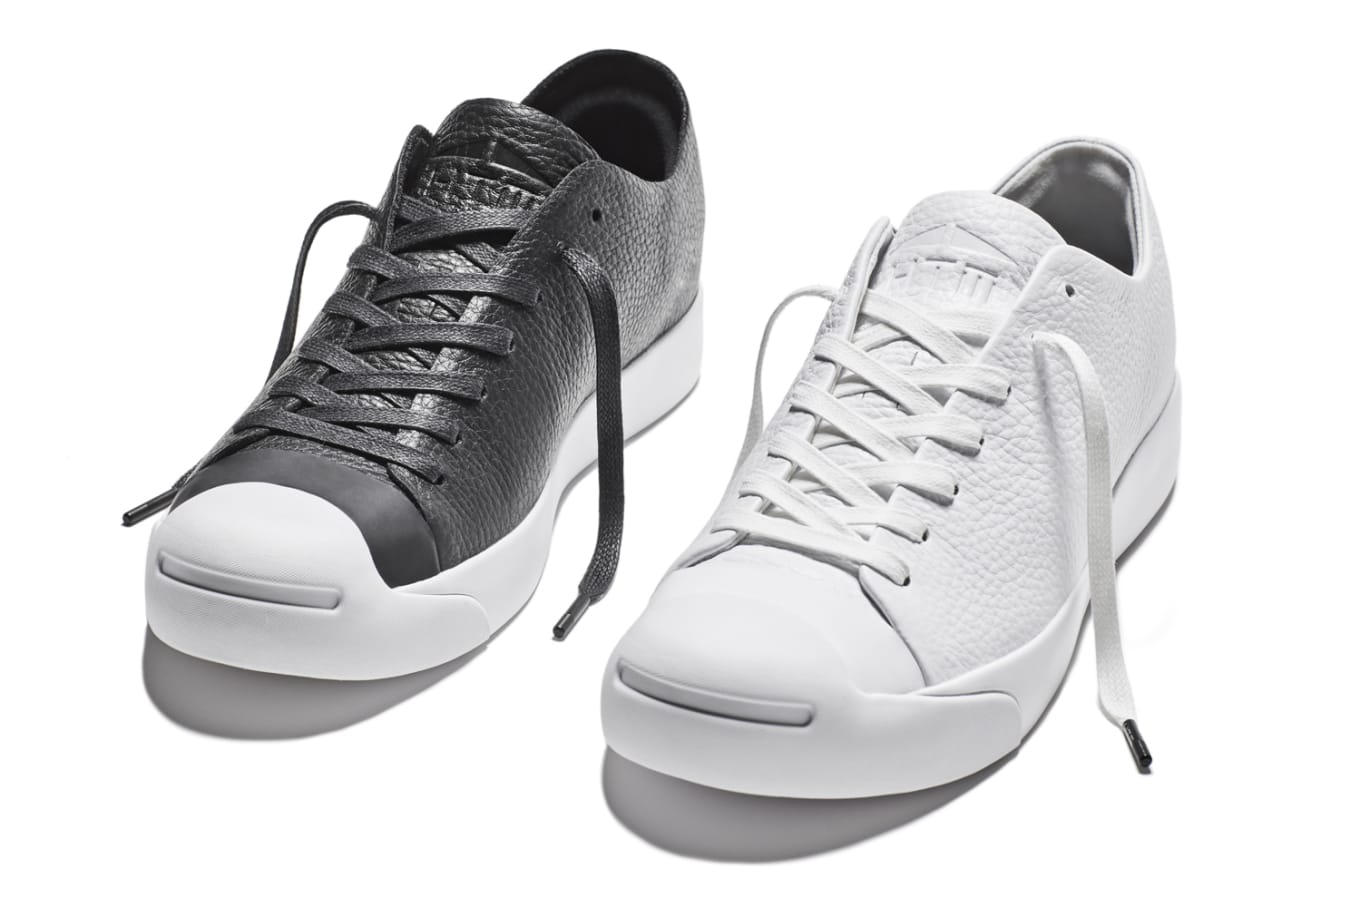 1361ce38b4571a HTM x Converse Jack Purcell launching on Sep. 8.